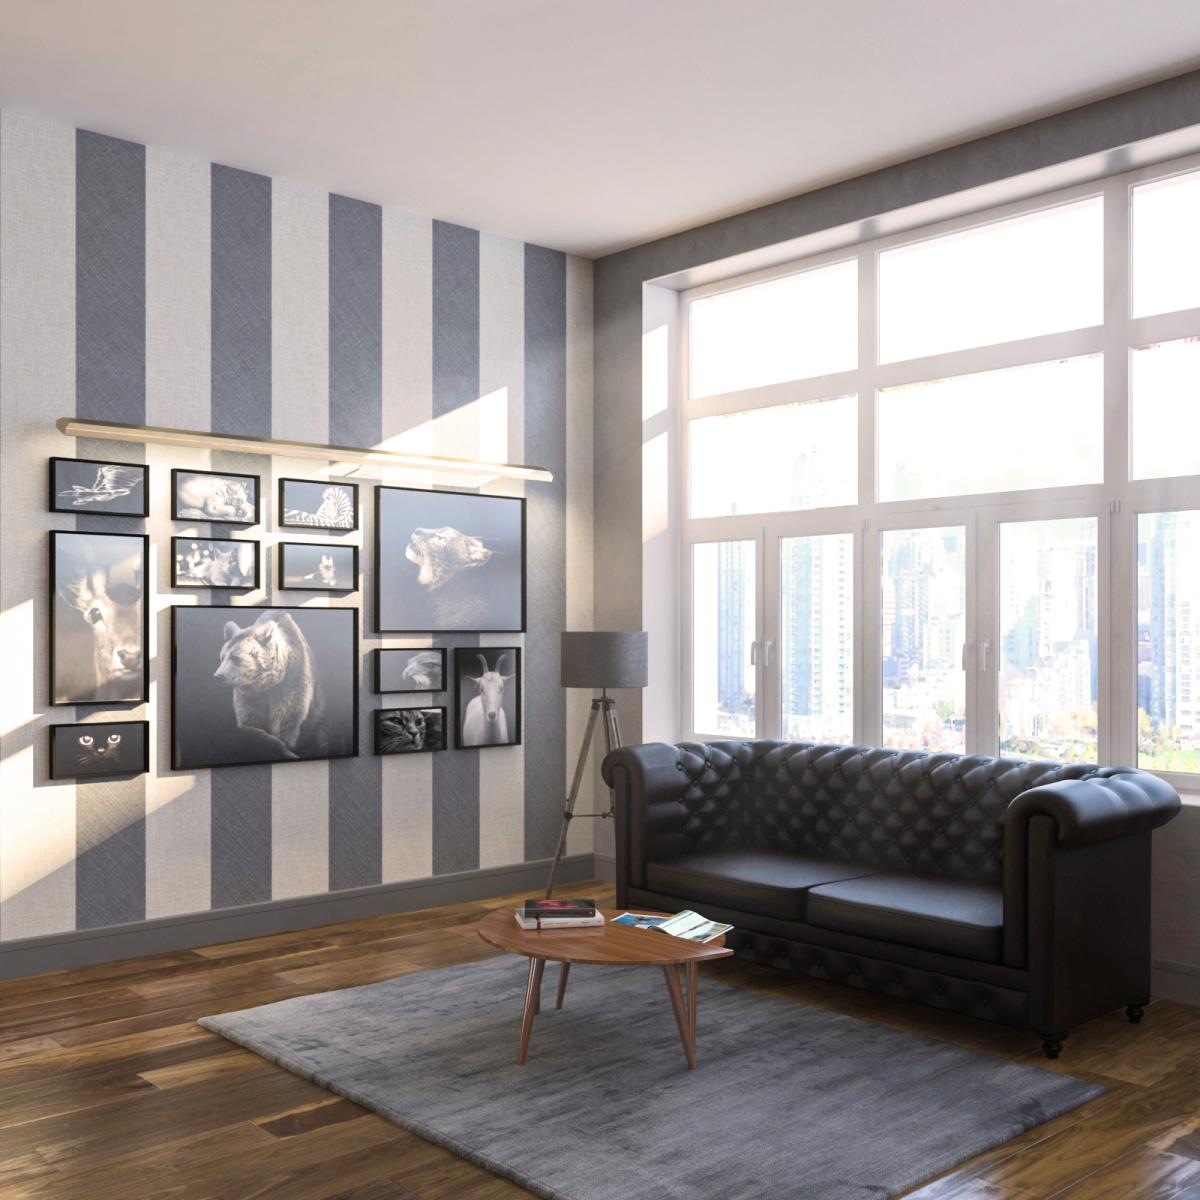 Interior, Office space Visualization